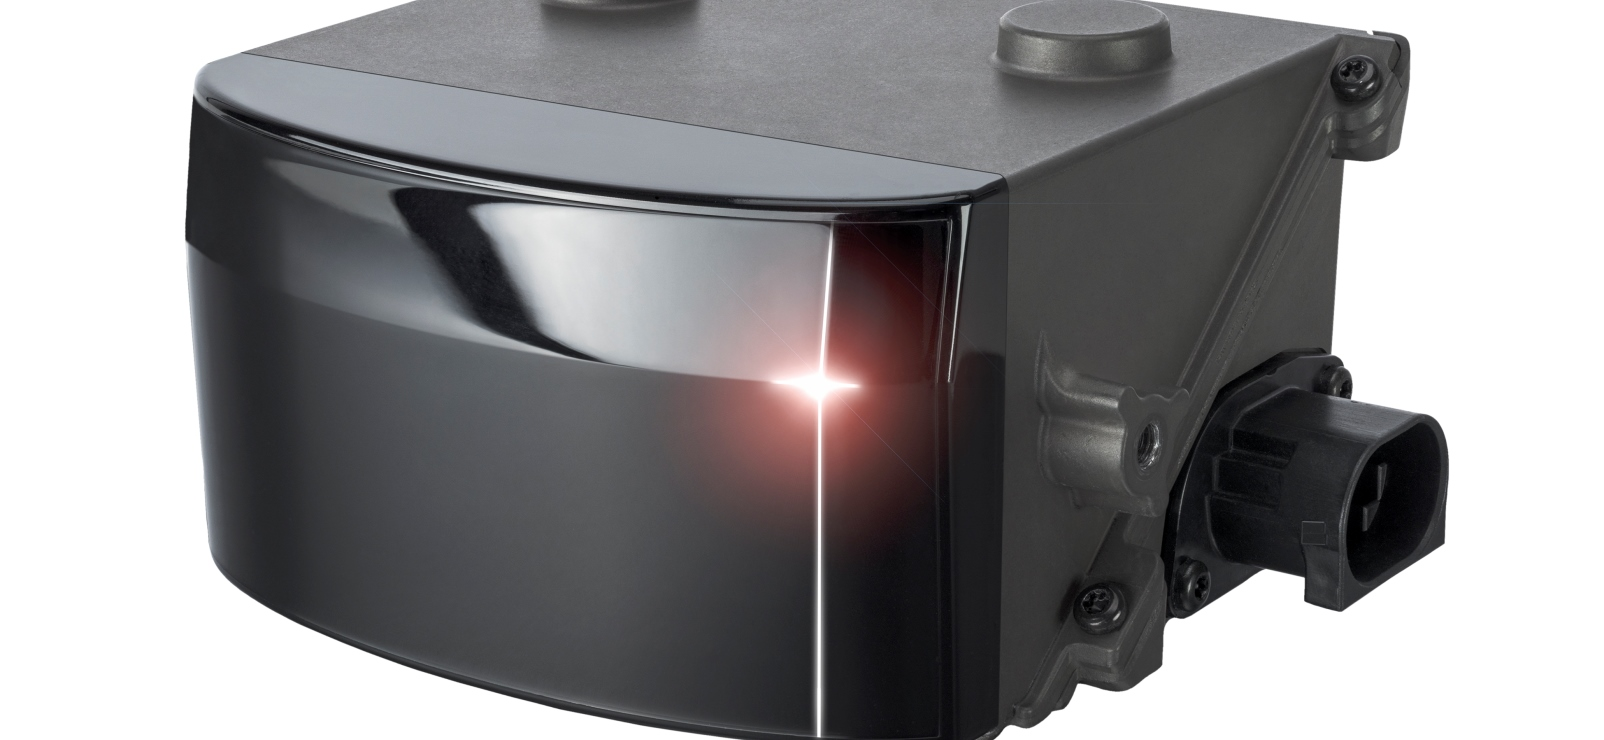 Valeo Scala 174 A Laser Scanner For Highly Automated Driving